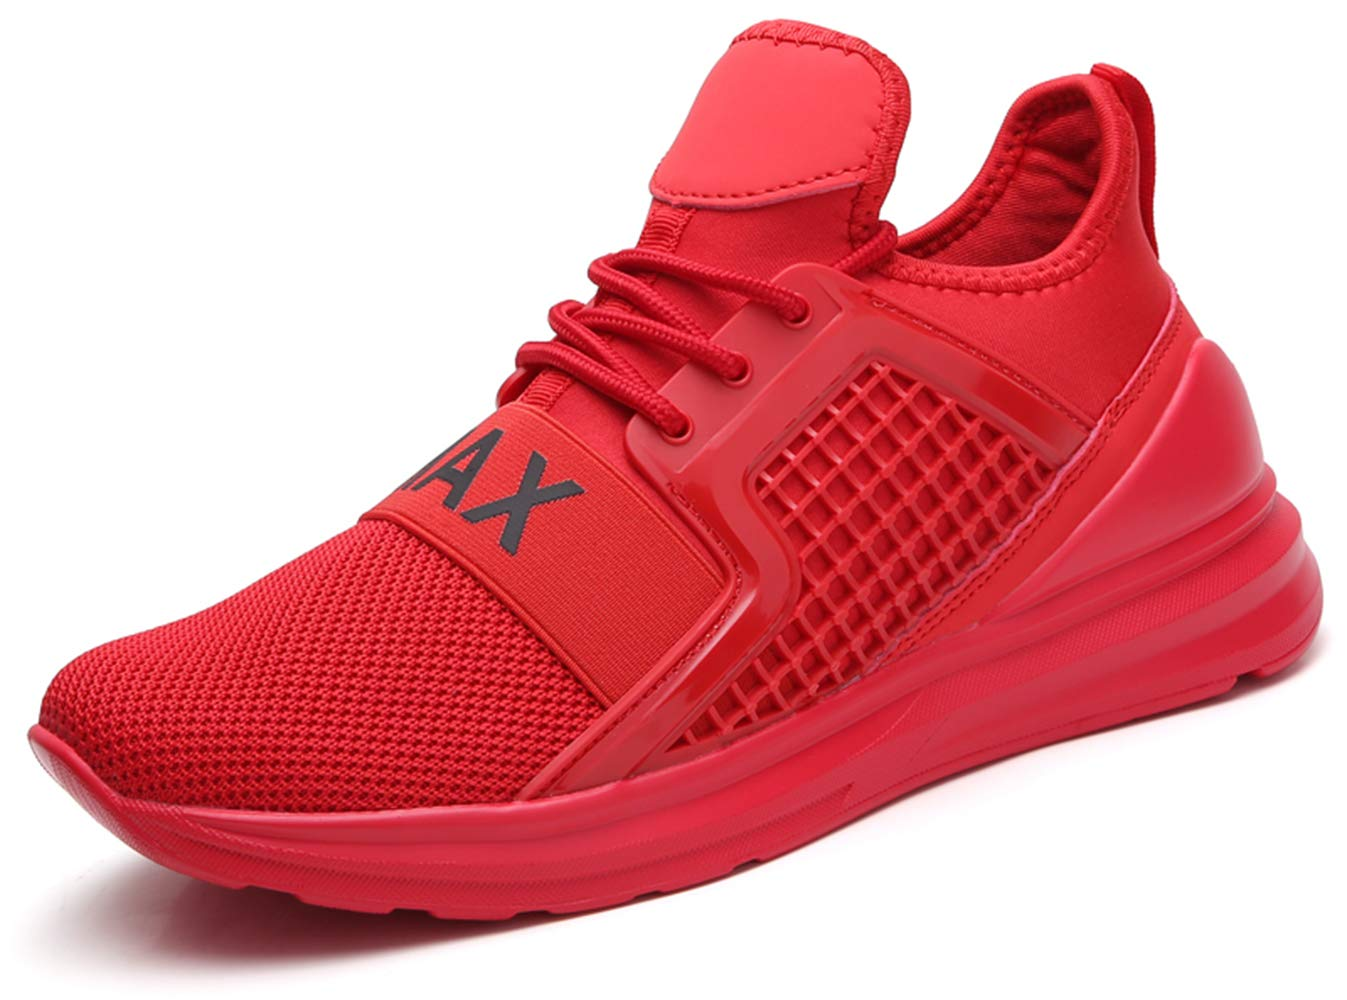 Ezkrwxn Men mesh Sport Walking Shoes Breathable Comfort Fashion Casual Tennis Trail Sneakers Gym Jogging Running Trainers Red Size 11 (7058-red-45)